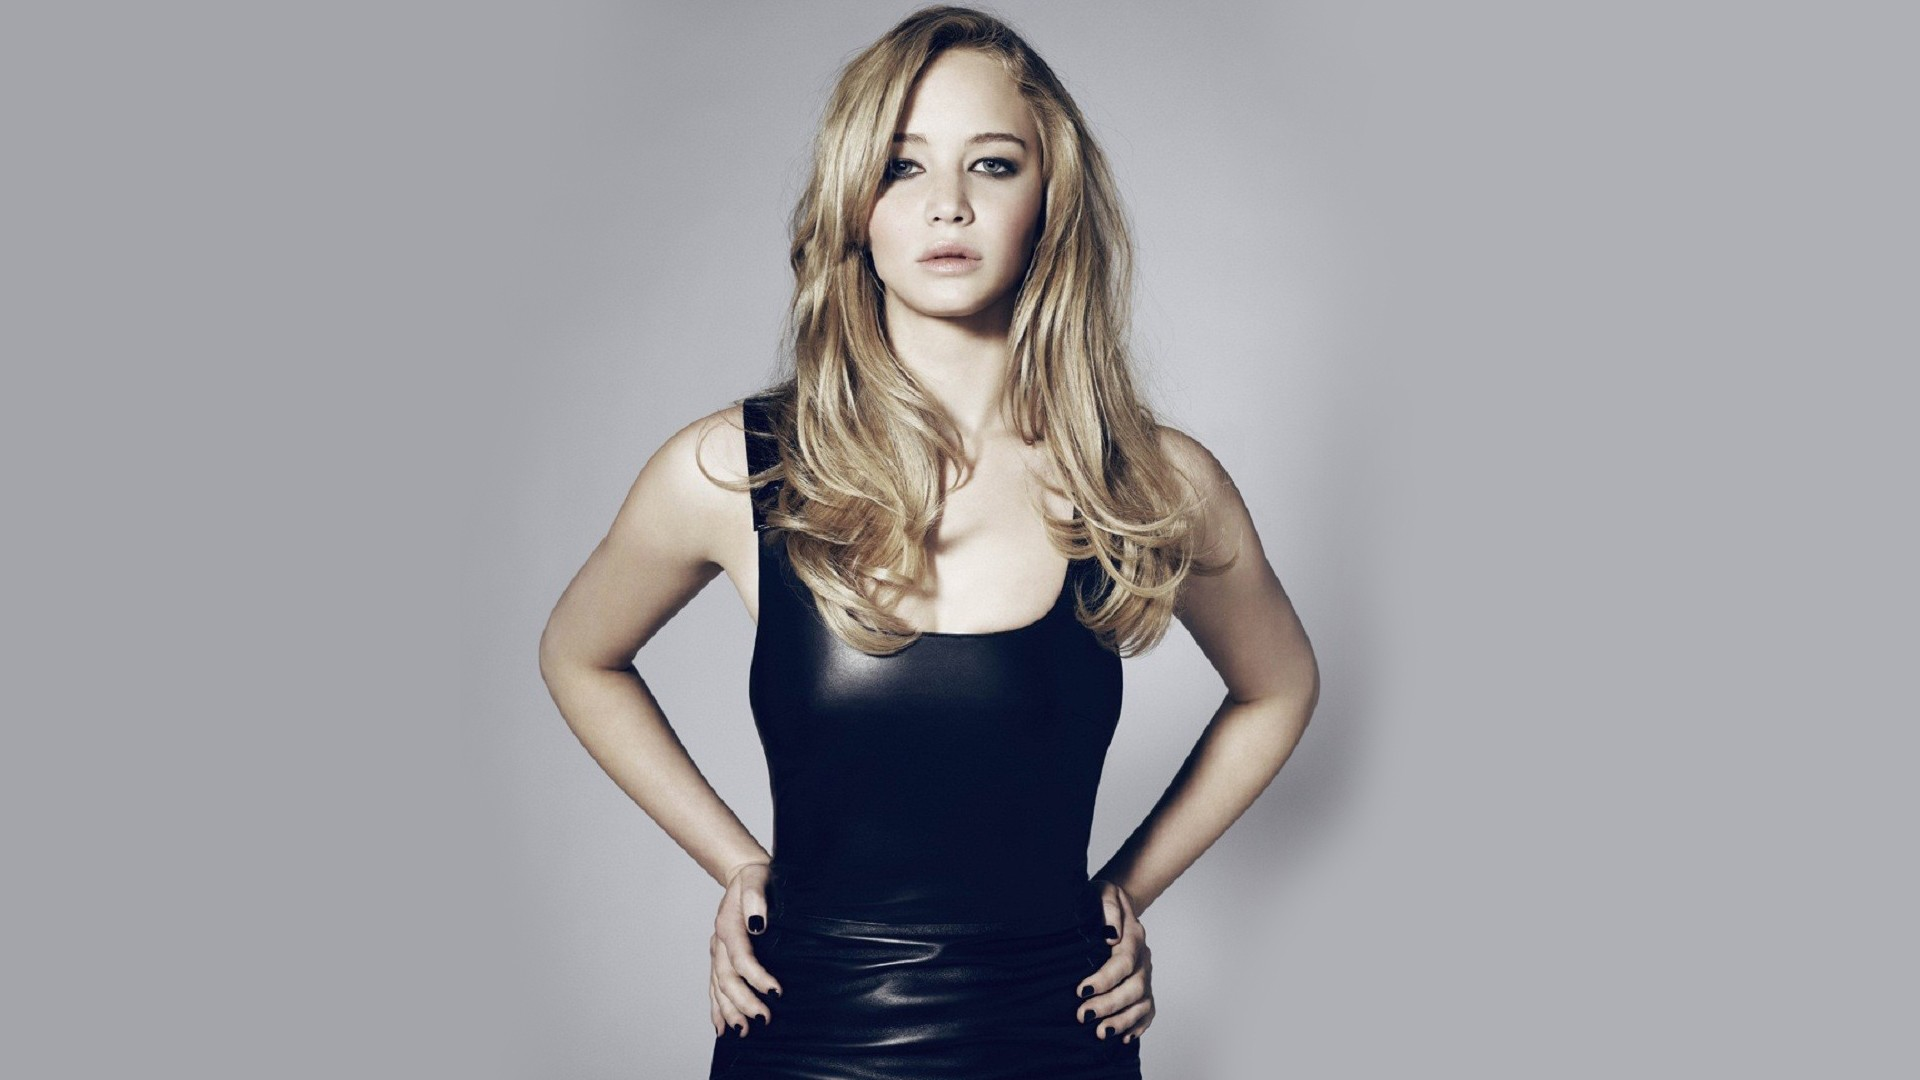 jennifer lawrence wallpapers high resolution and quality